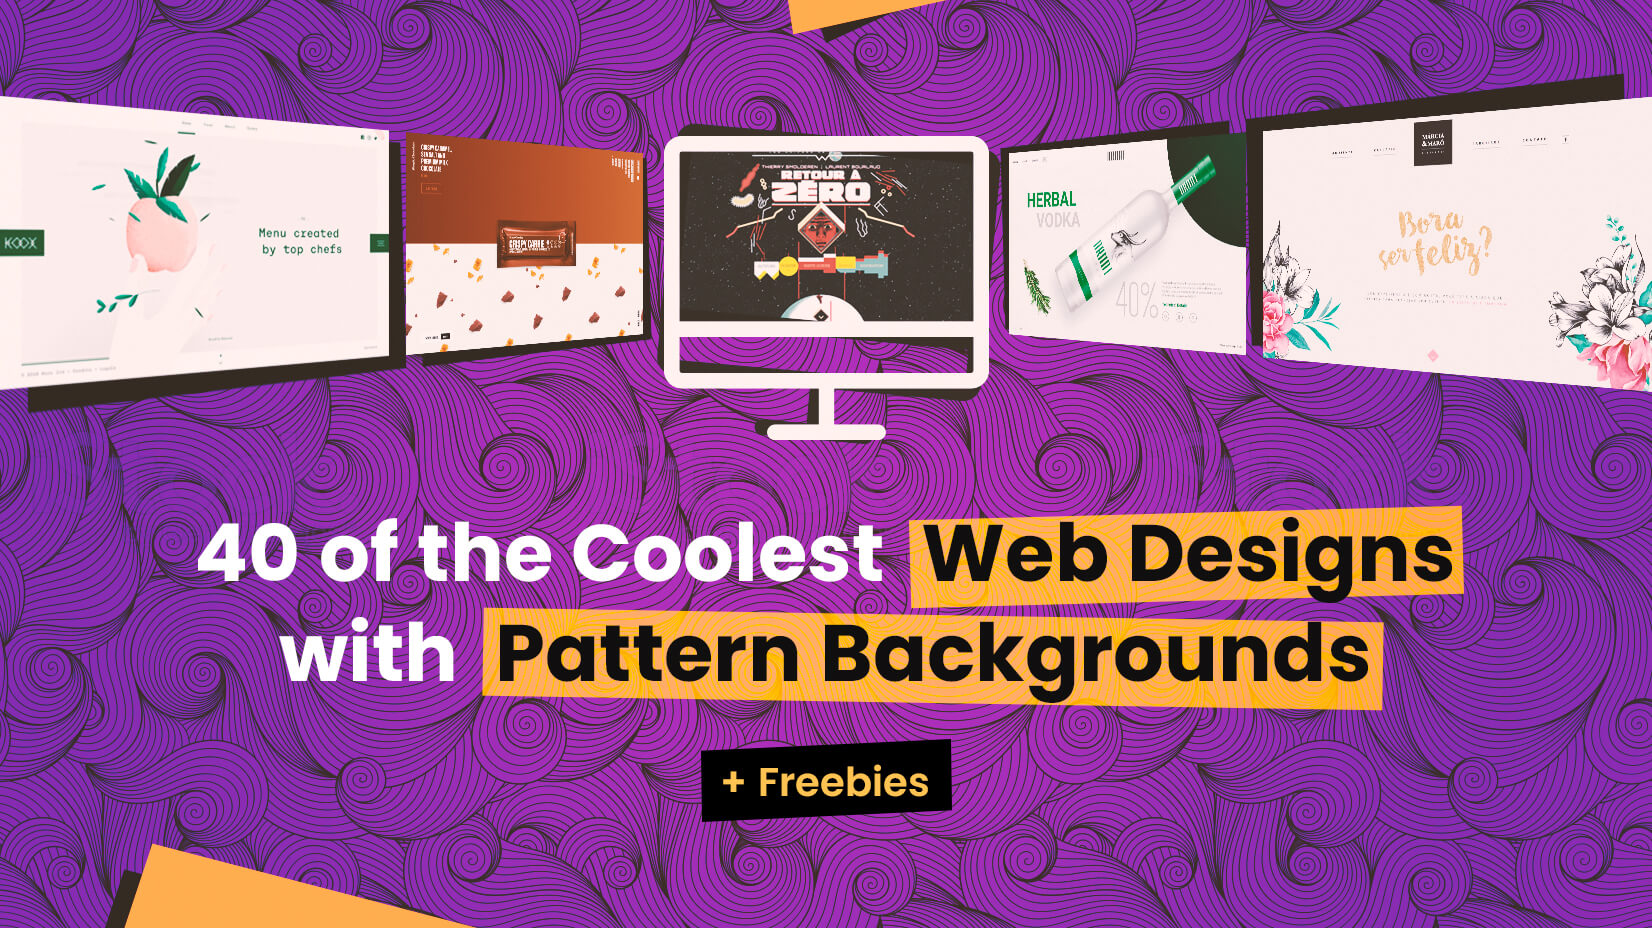 40 of the Coolest Web Designs with Pattern Backgrounds Freebies 1652x928